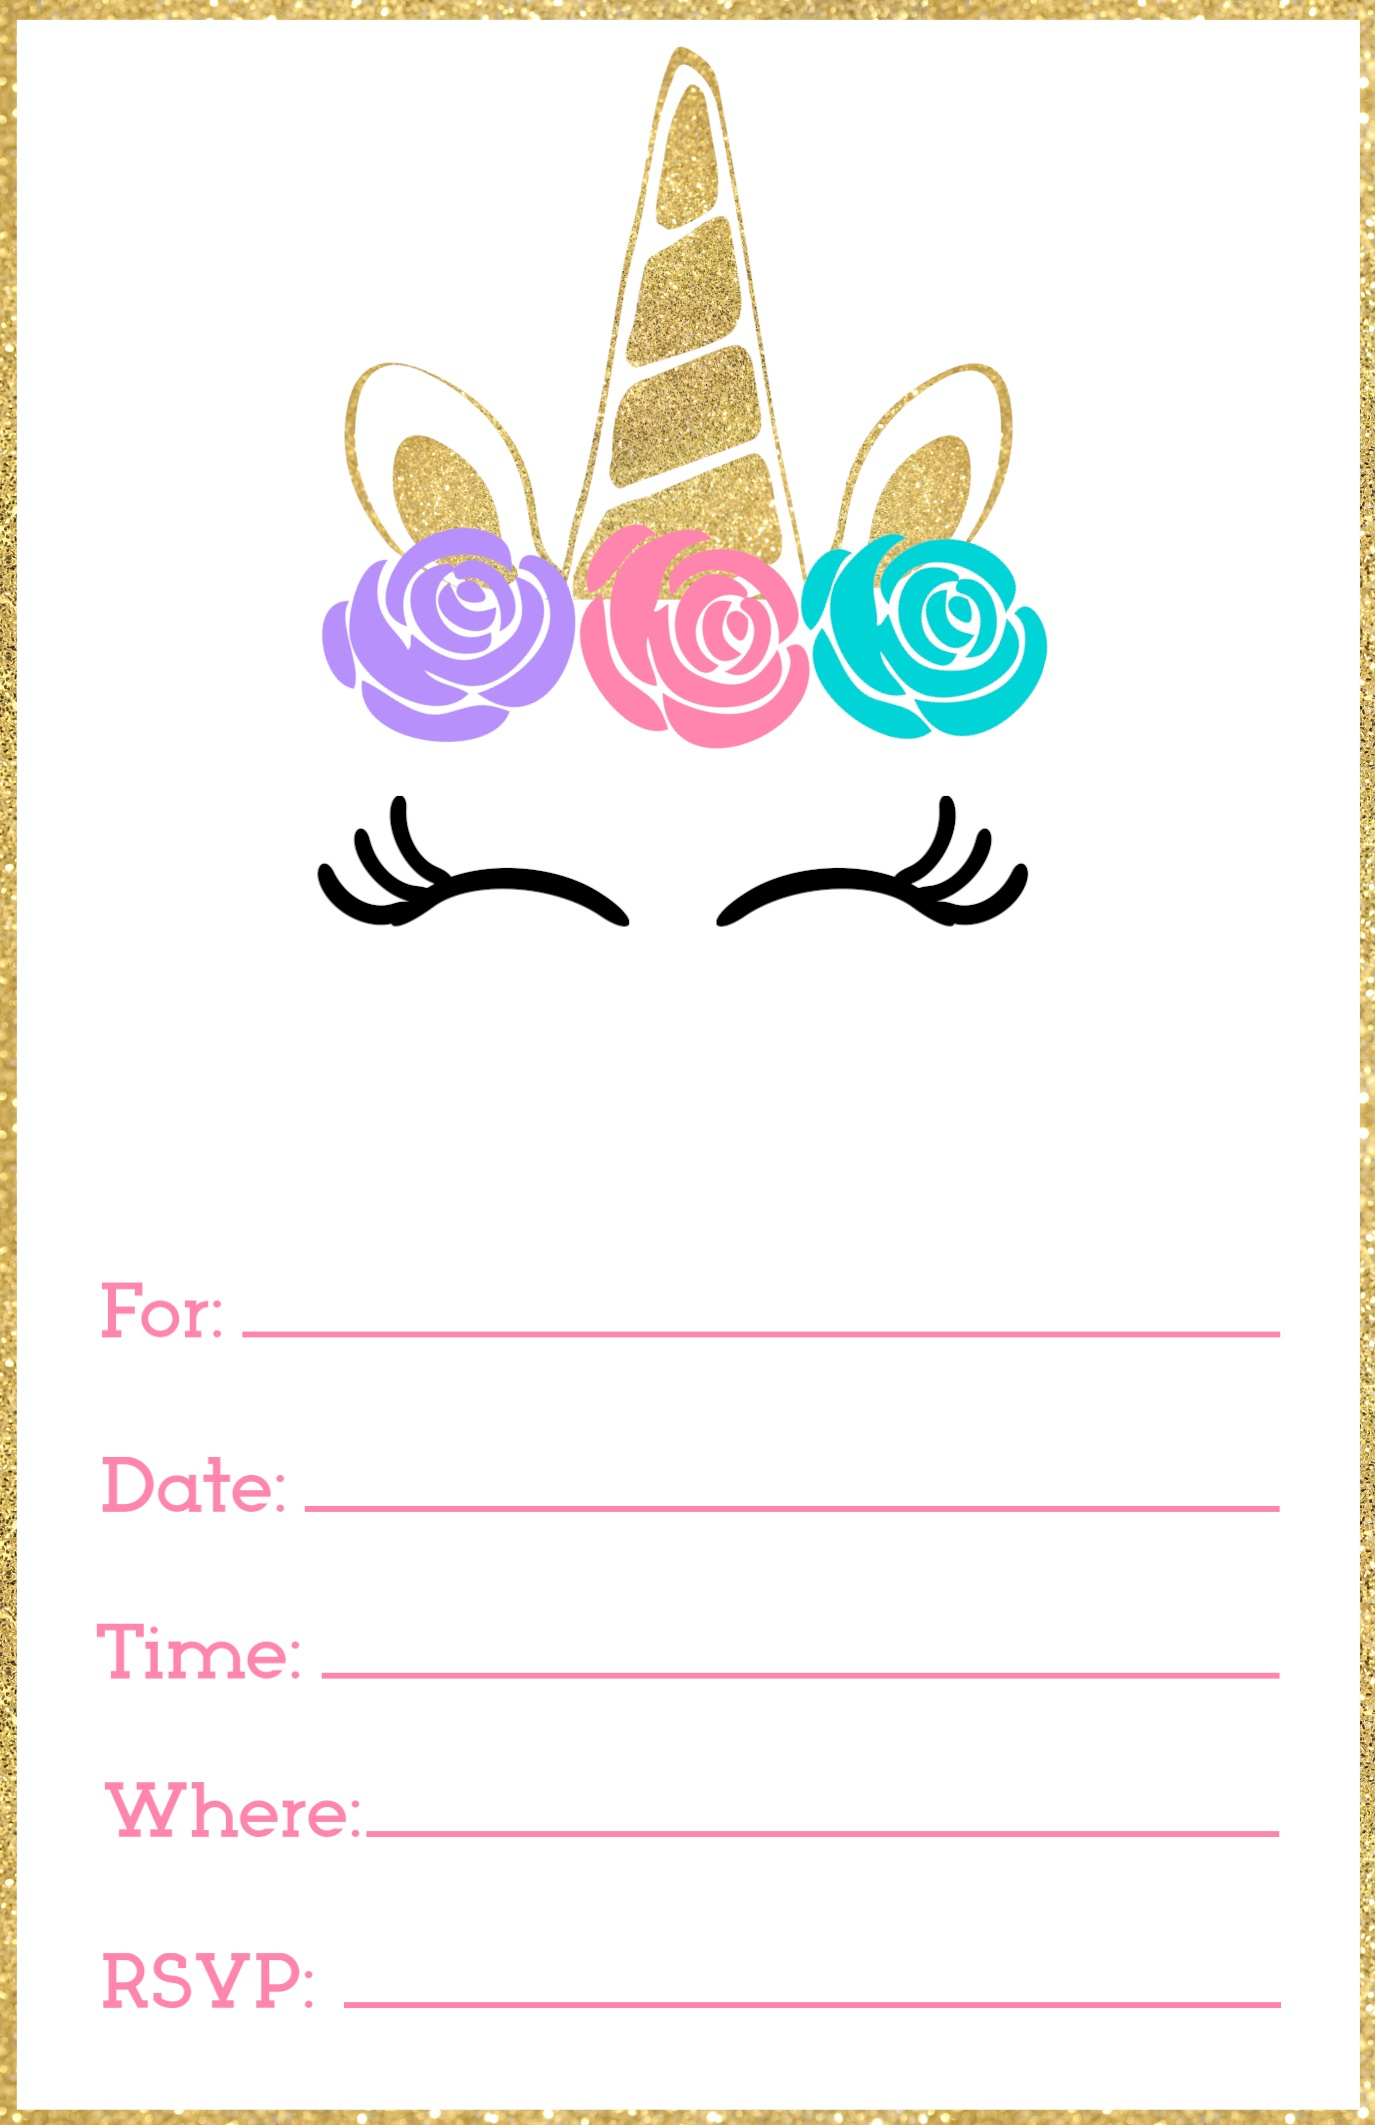 Free Printable Birthday Party Invitations - Granizmondal - Free Printable Birthday Party Invitations With Photo